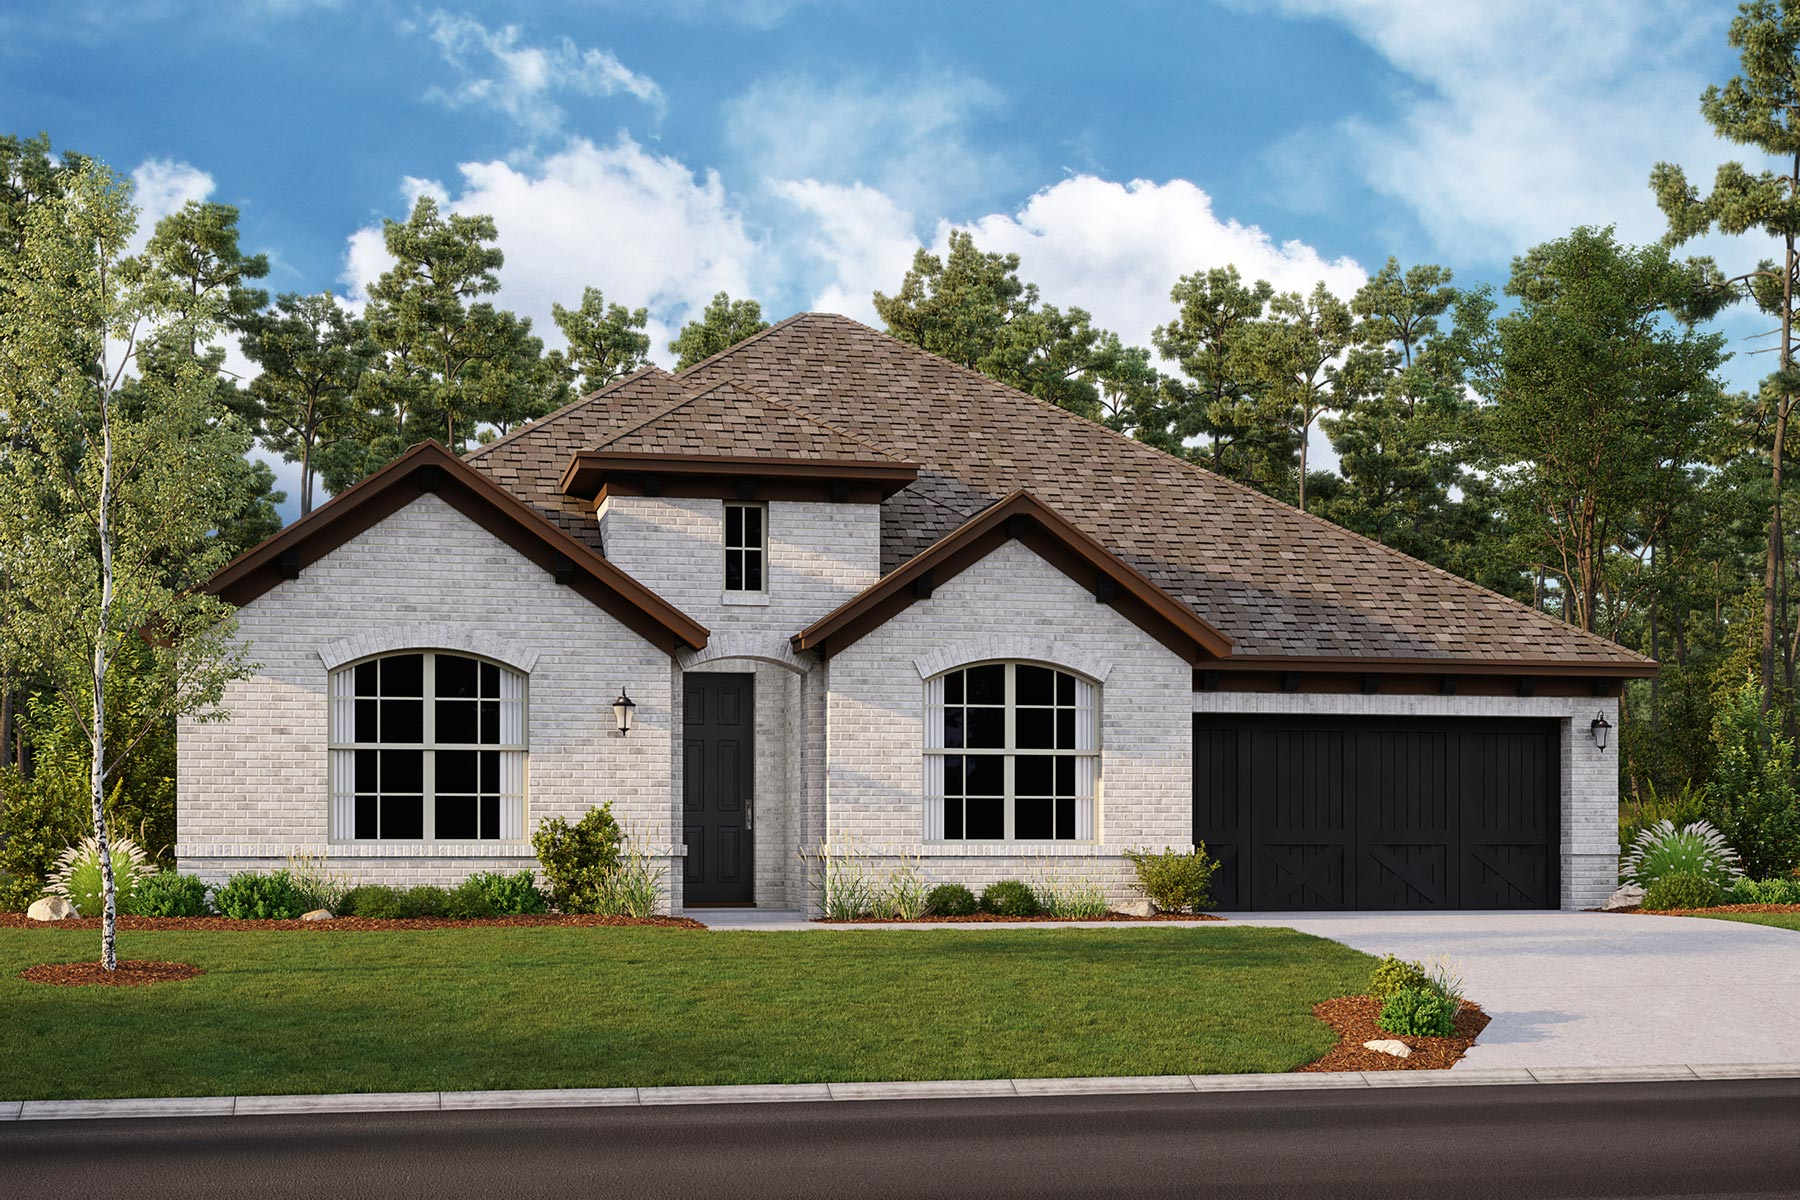 Avery II Plan DAL_Avery_ElevationC_1800x1200 at Villages of Hurricane Creek in Anna Texas by Mattamy Homes